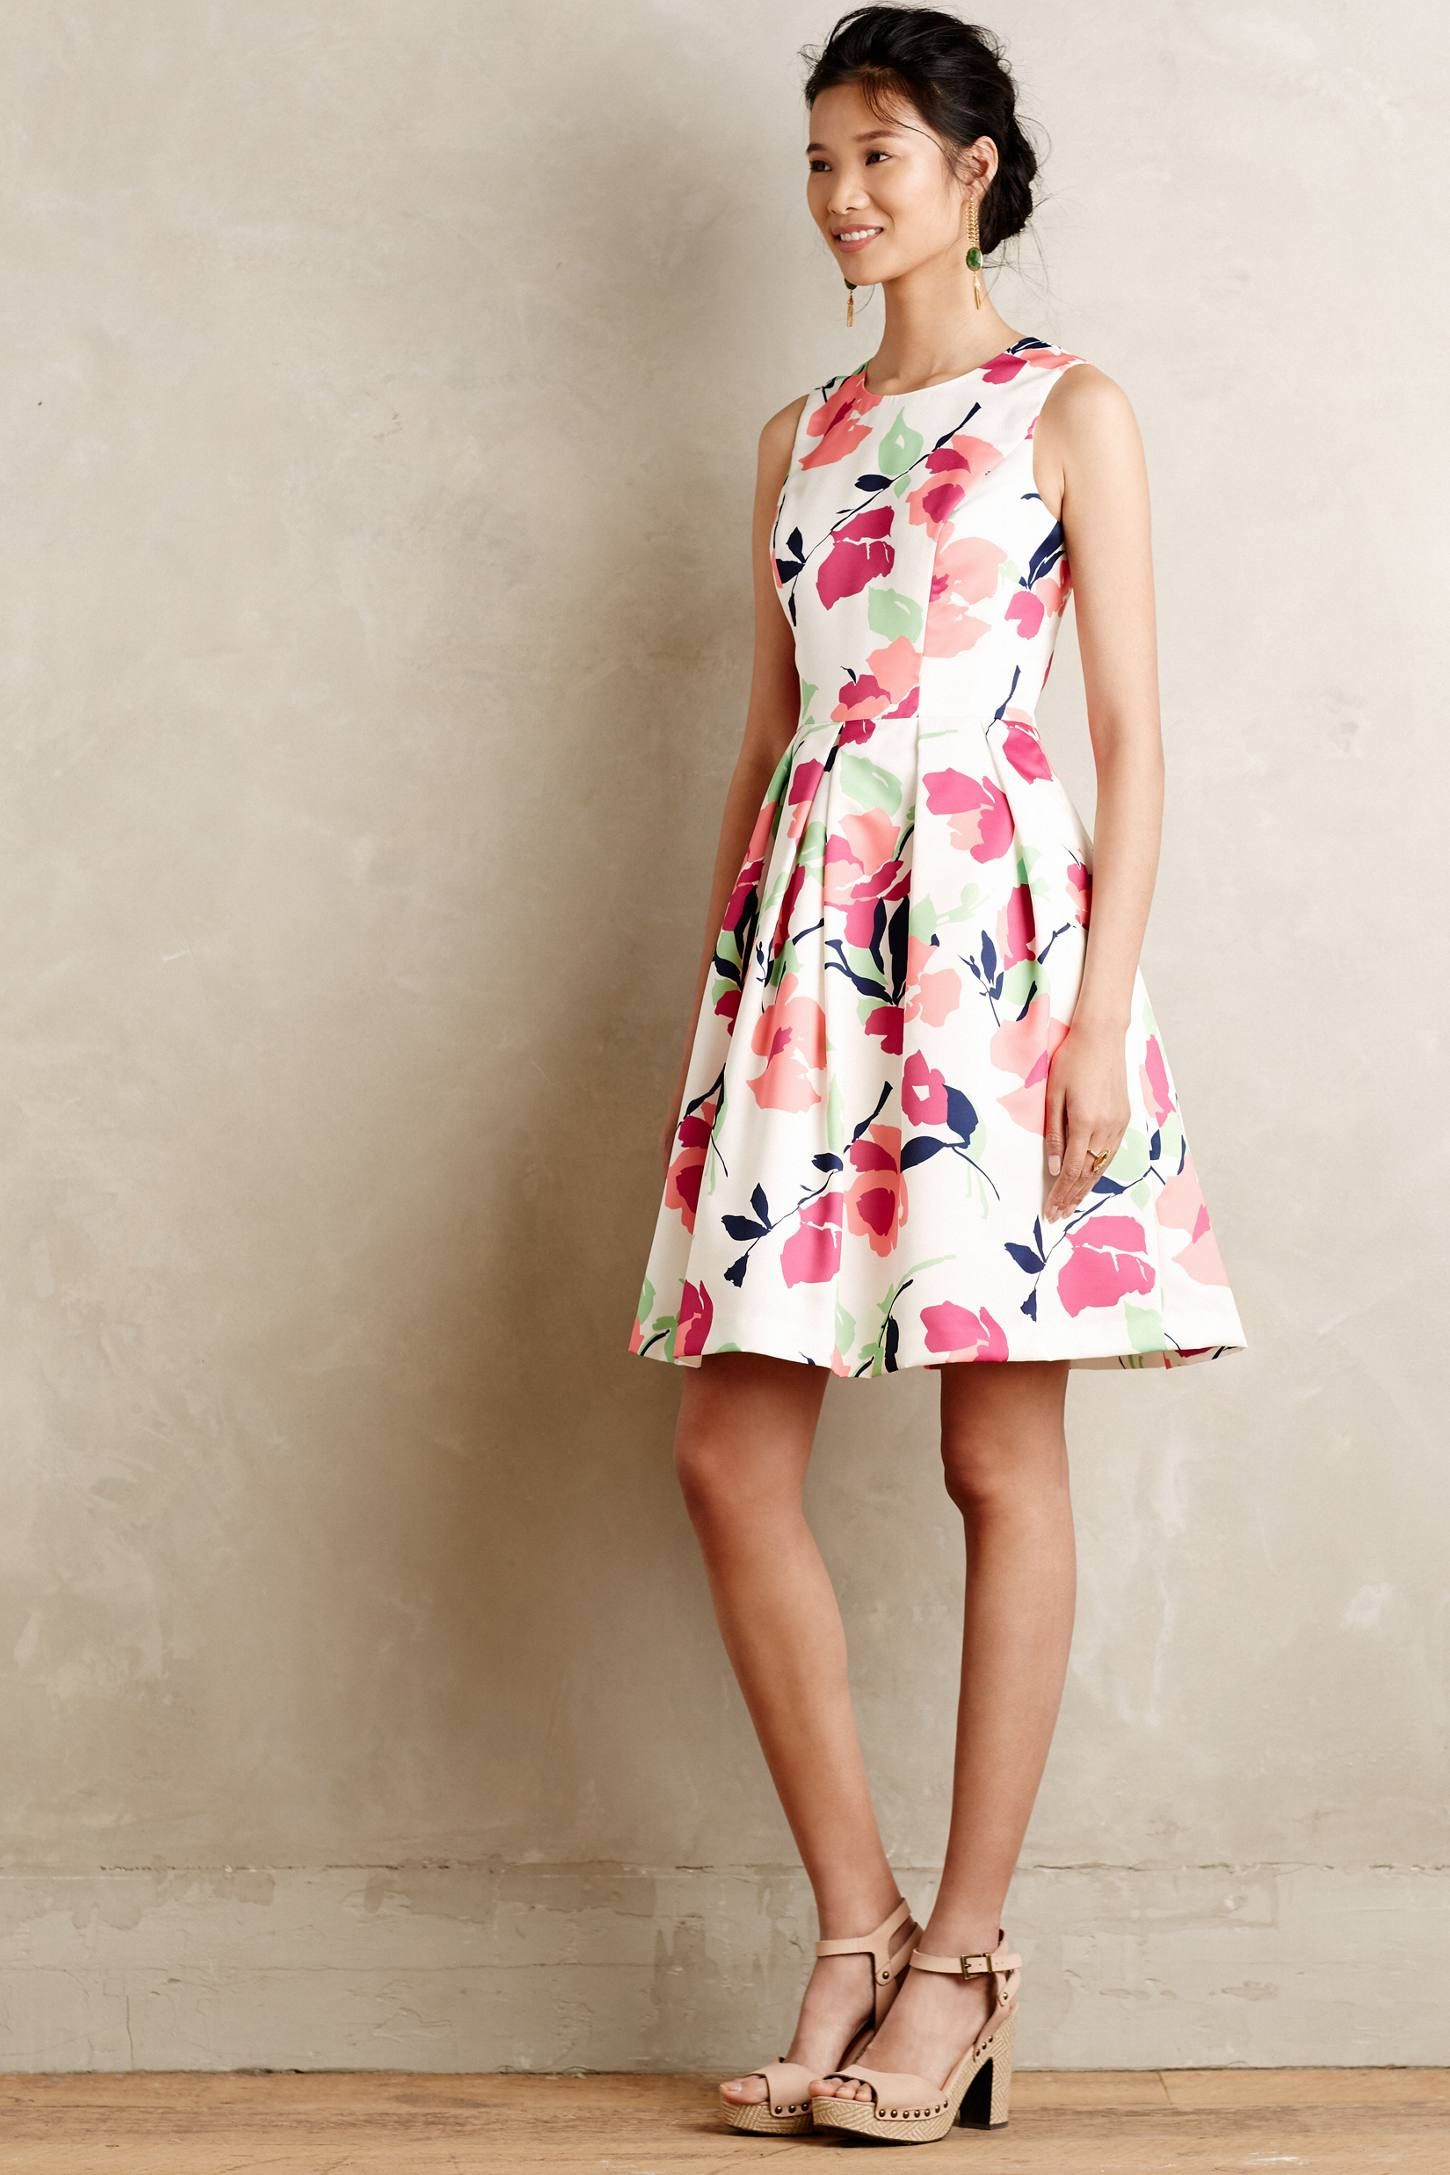 fabulous bridal shower dresses to wear if youre the bride dress from anthropologie featured on dress for the wedding